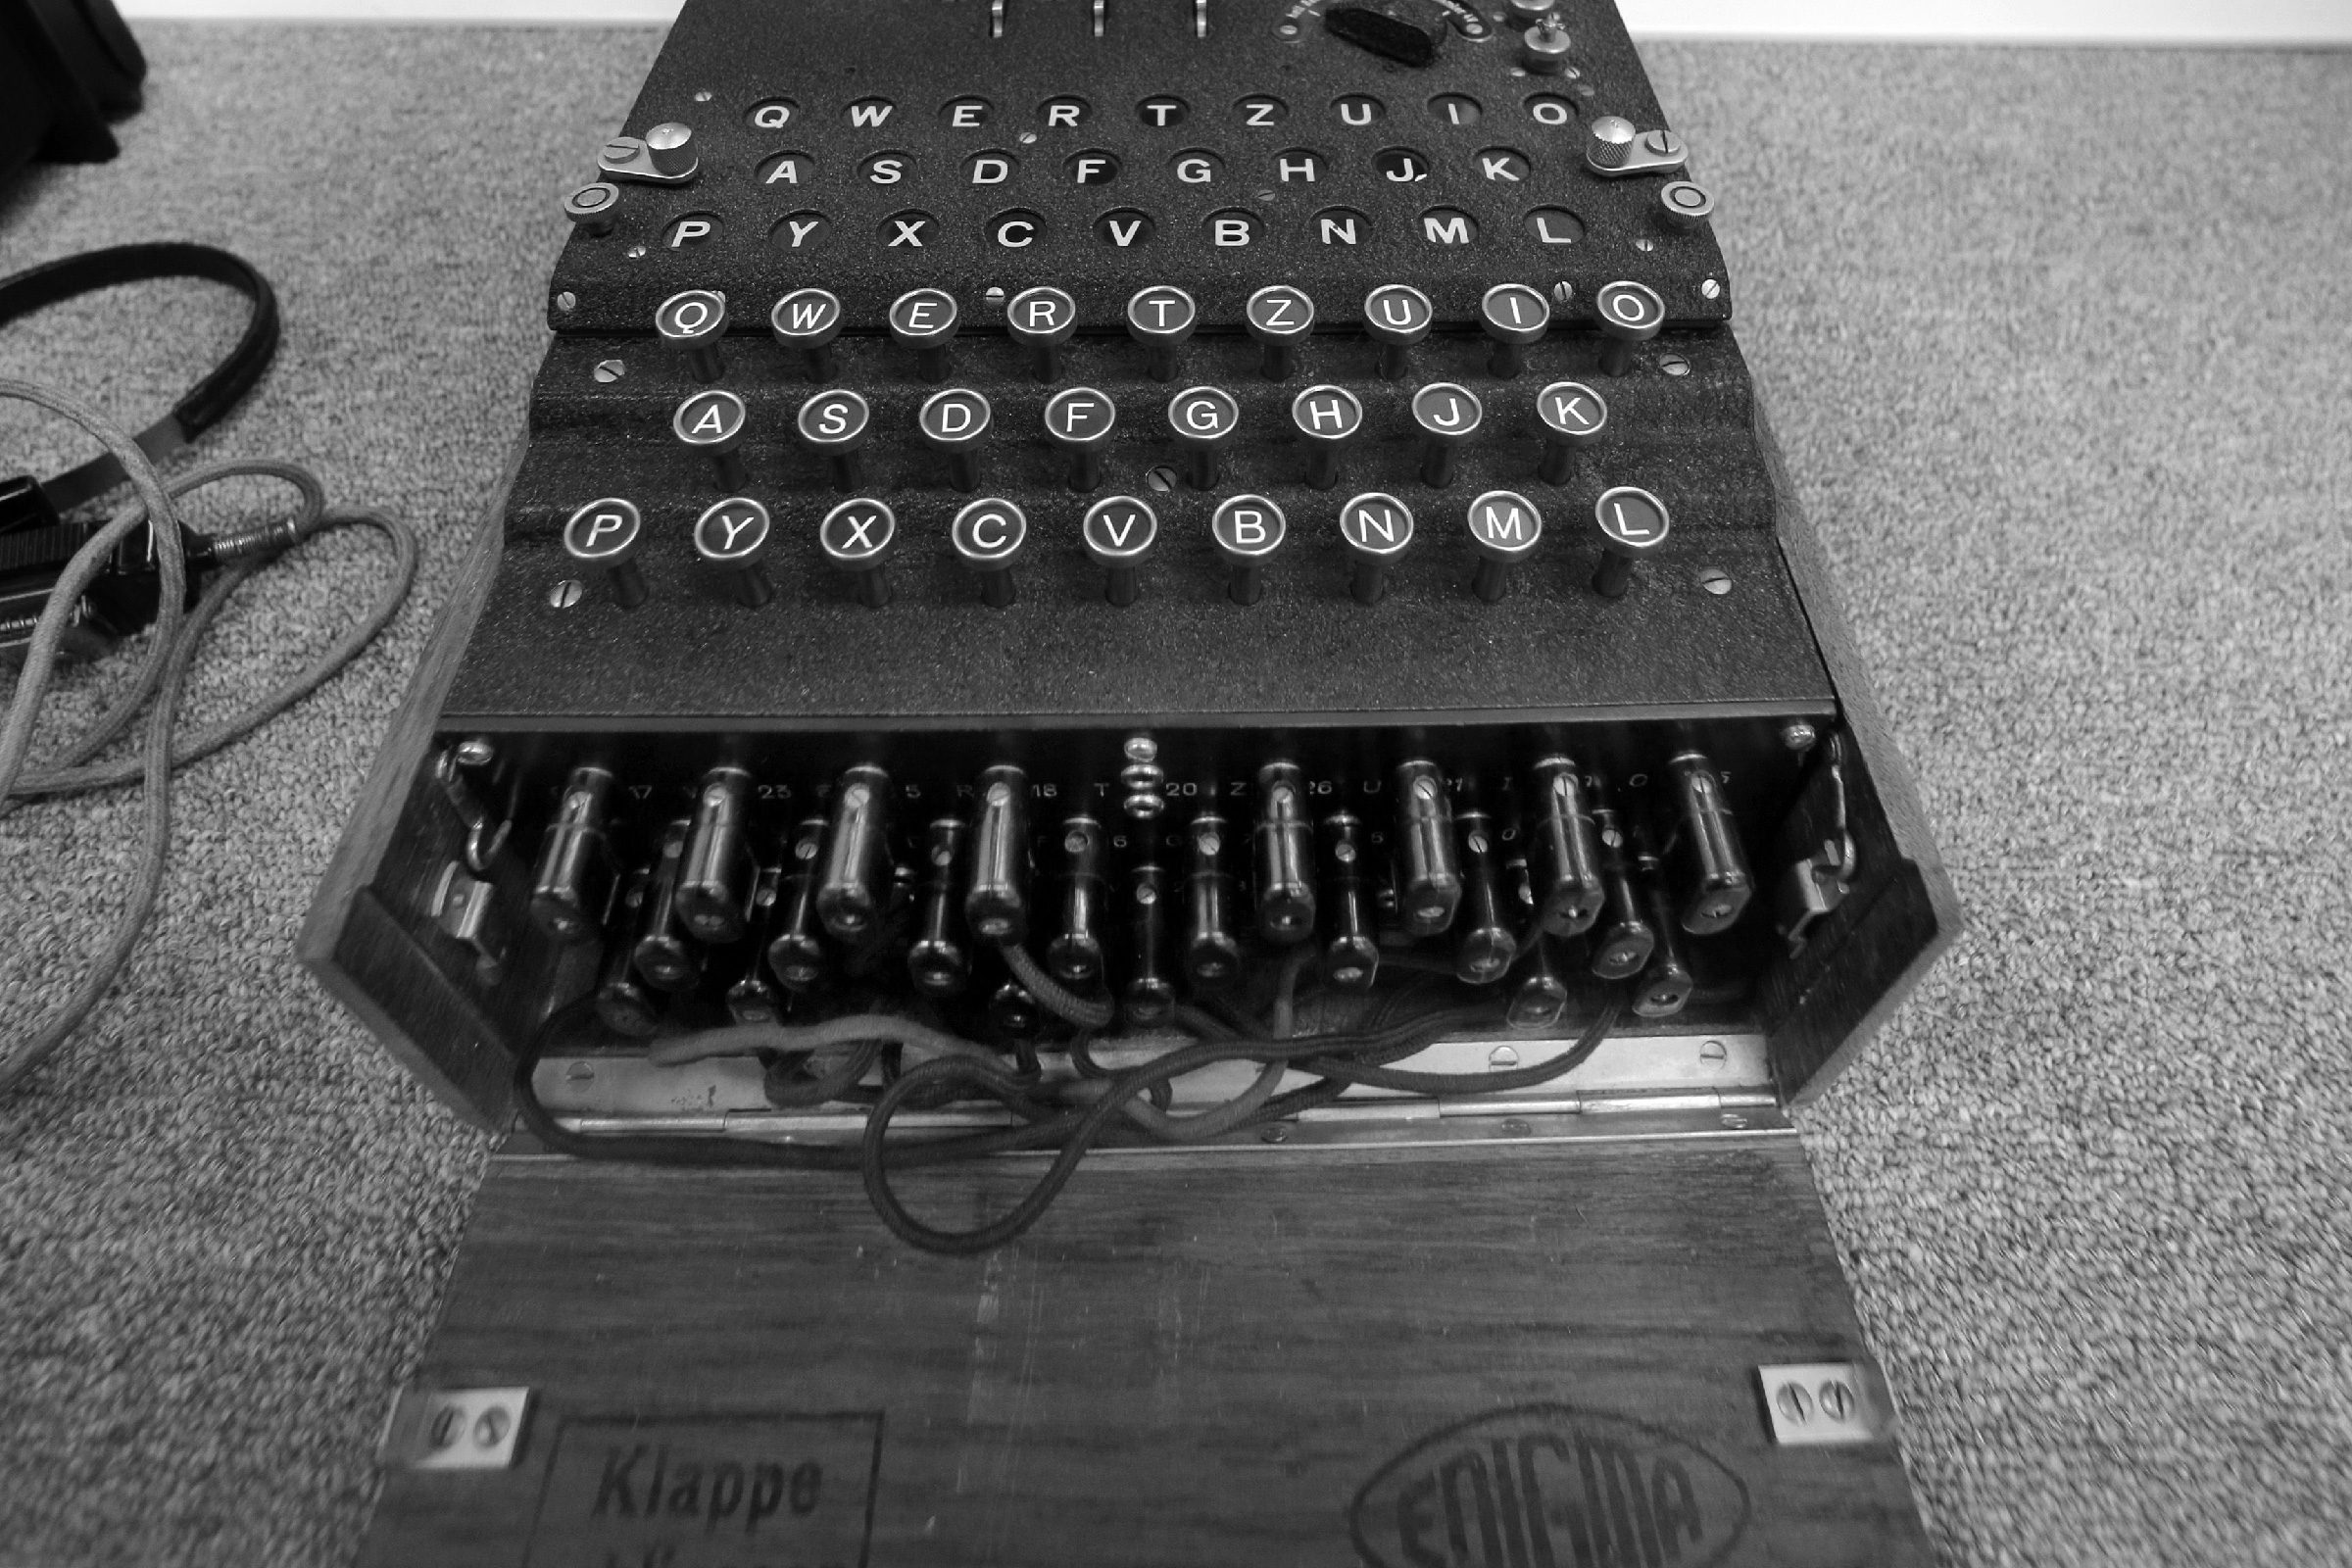 """A Nazi Enigma encryption machine is displayed at the World War II Museum in Natick, Mass., . In the Oscar-nominated film """"The Imitation Game,"""" Benedict Cumberbatch leads a code-breaking operation targeting the Nazis' infamous Enigma encryption machines. The obscure suburban Boston museum boasts the largest U.S. collection of Enigmas outside of the NSA"""